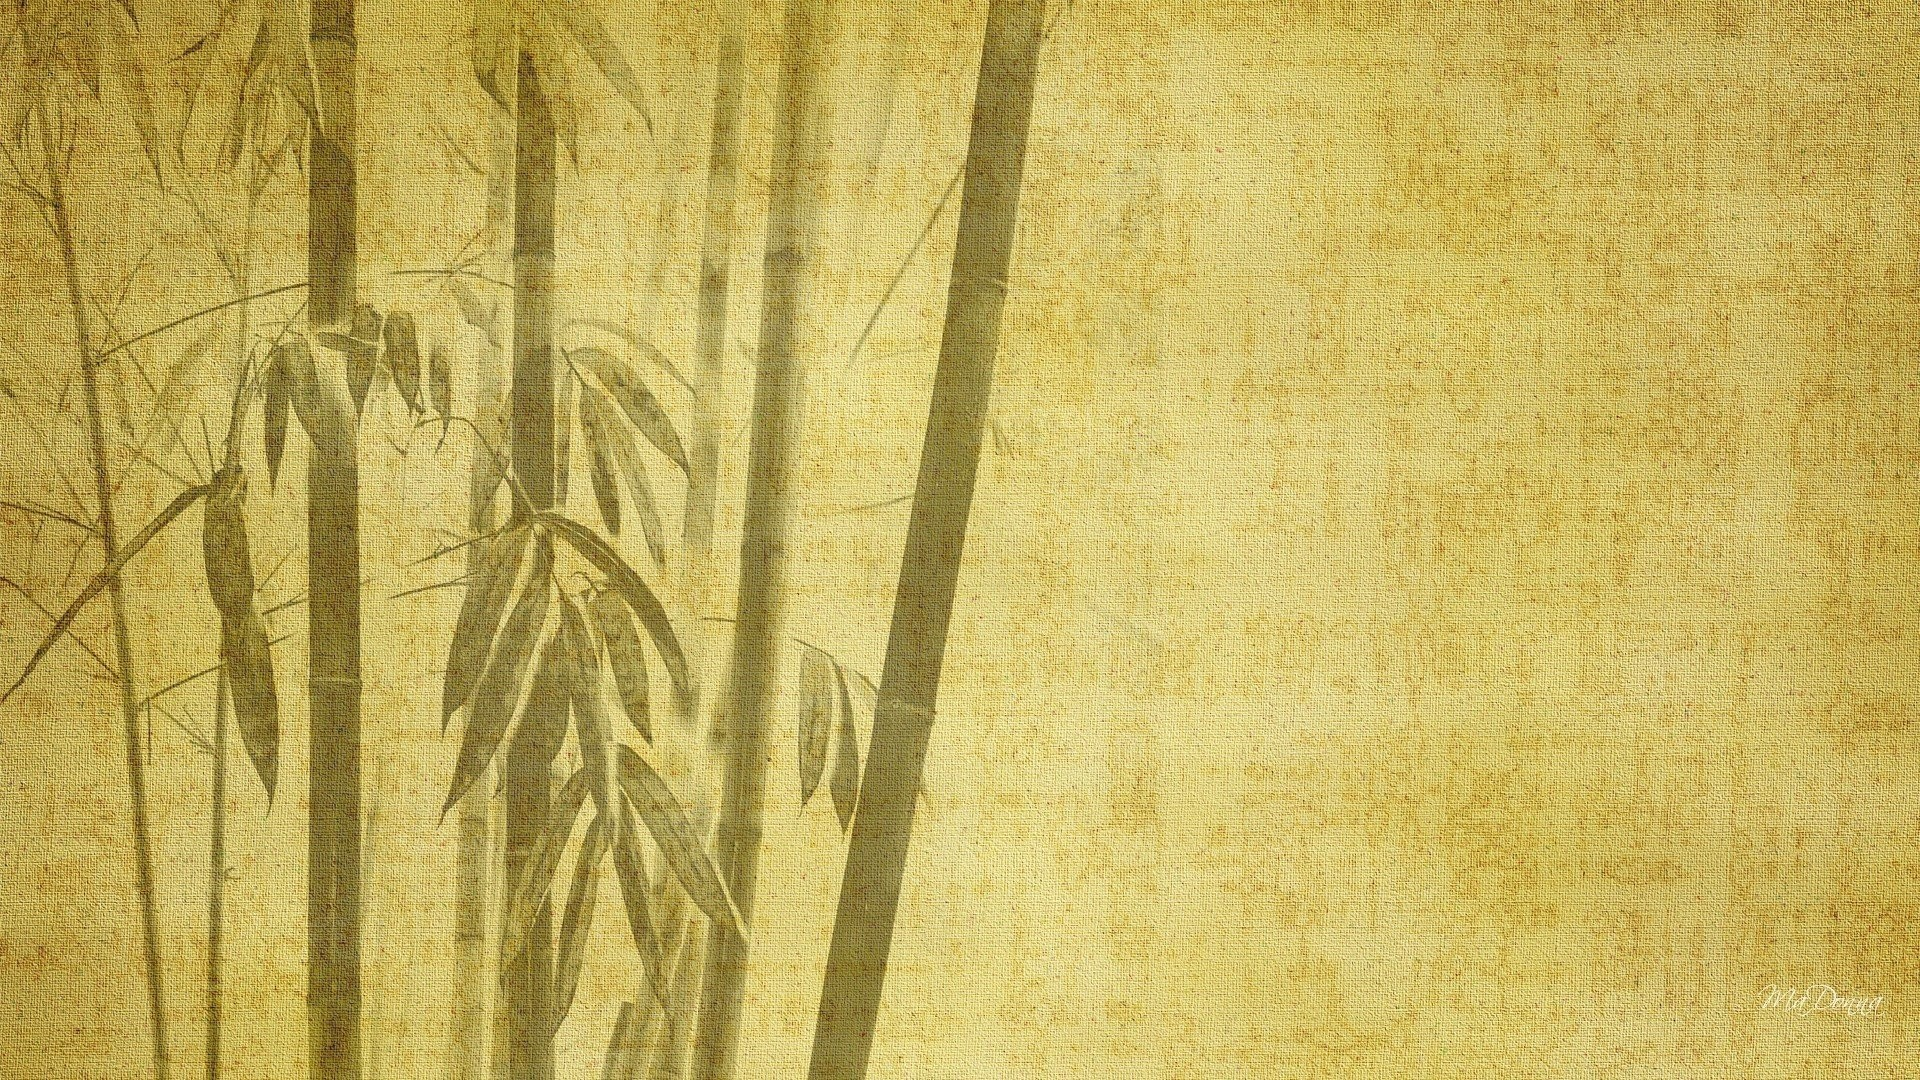 Hd Nature Wallpaper For Android Phone Bamboo Background 183 ① Download Free Awesome Full Hd